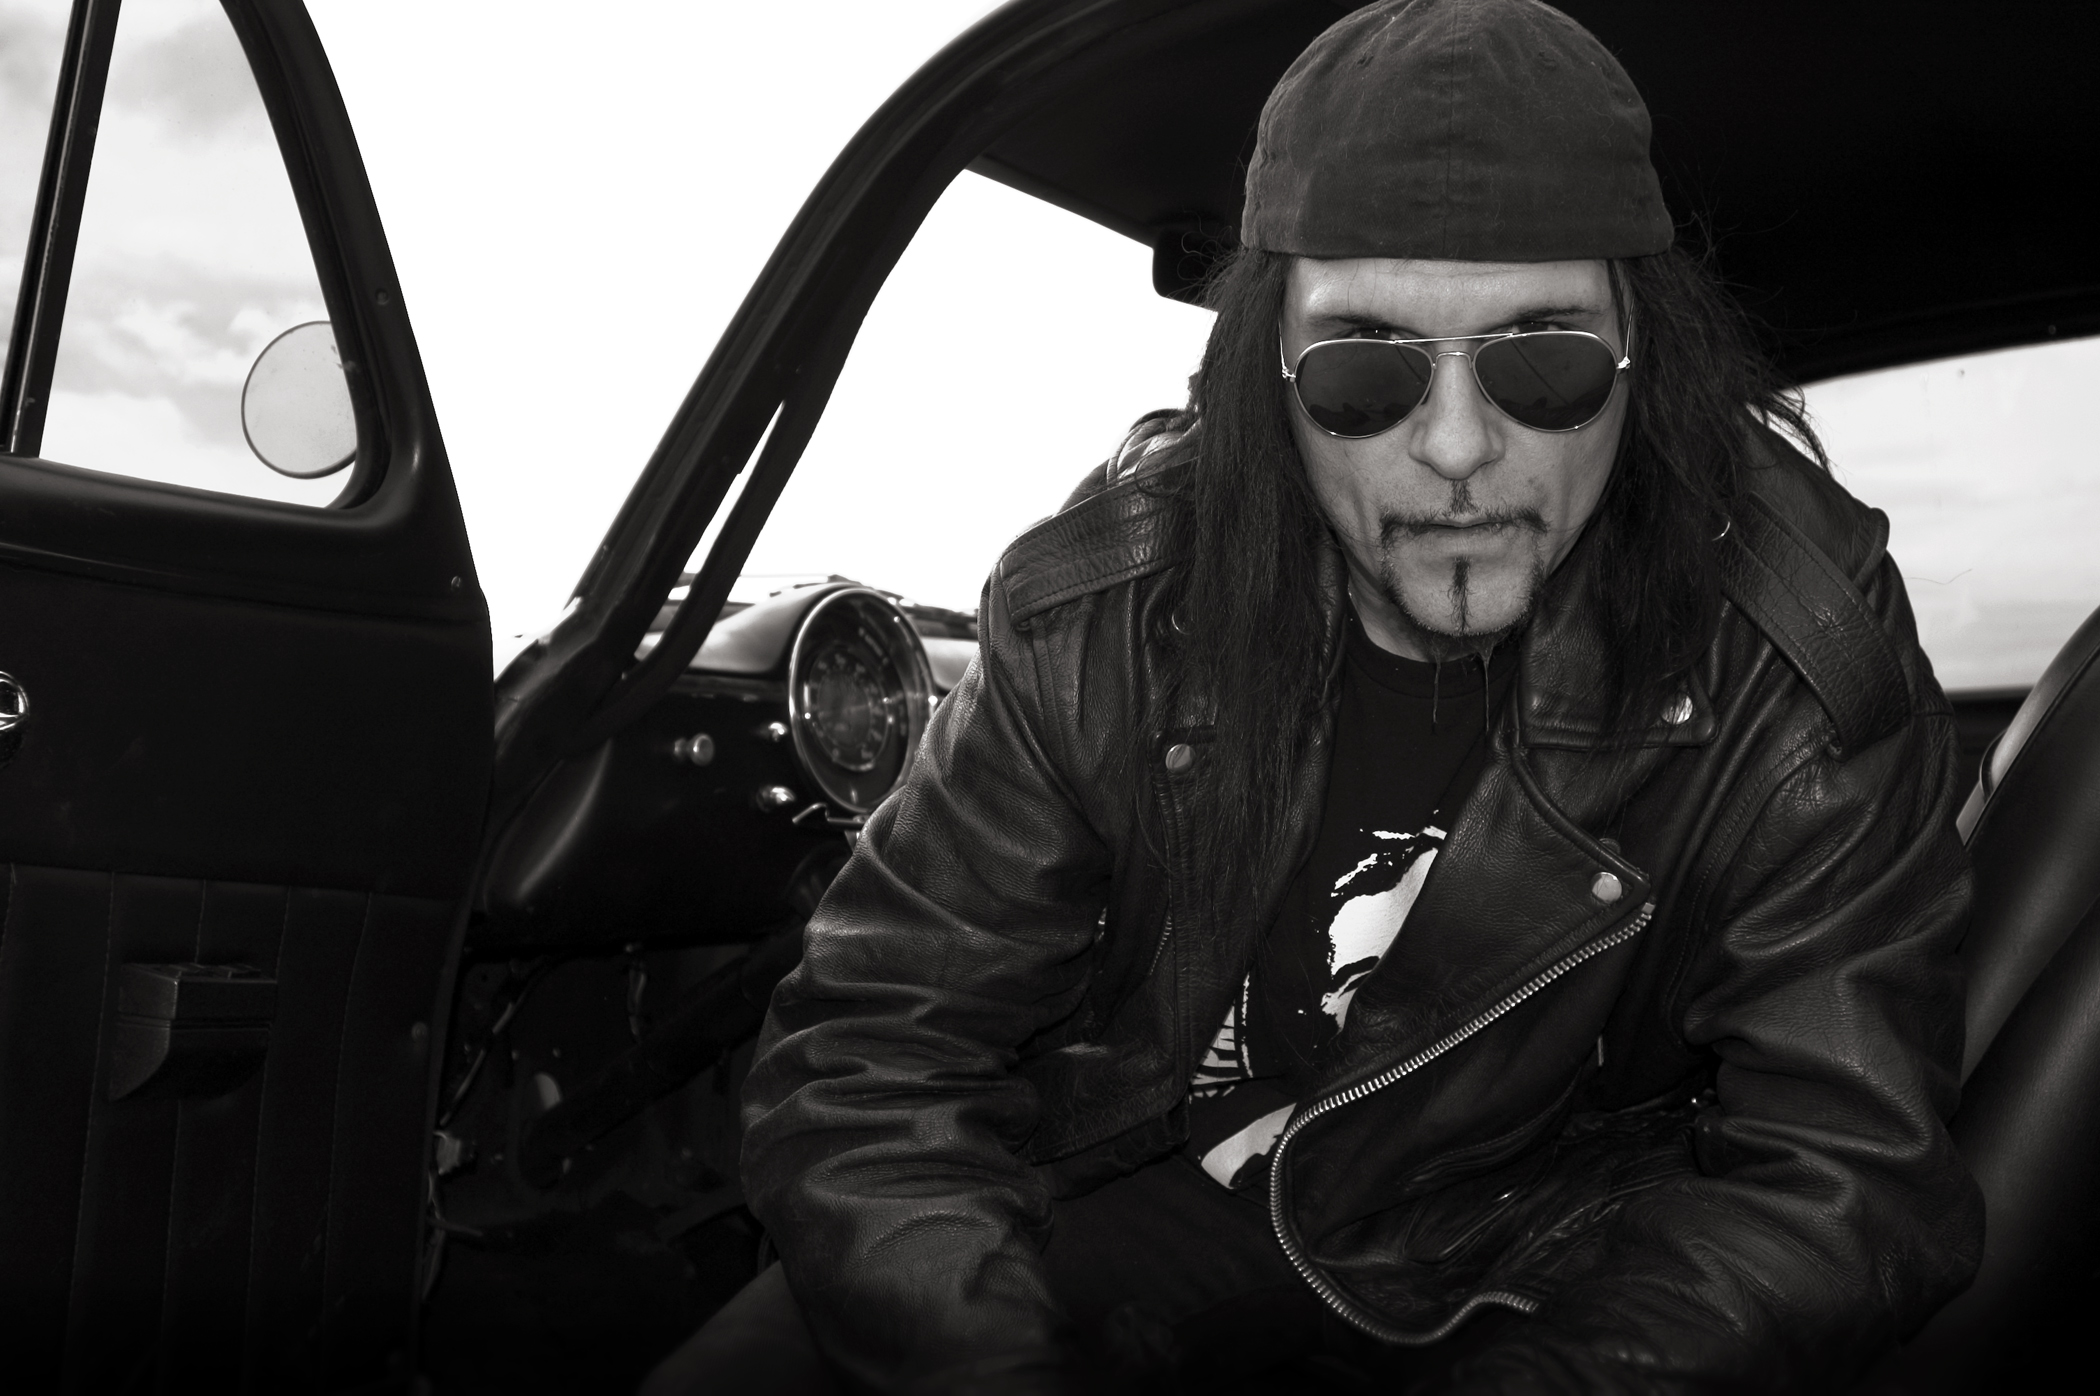 Al Jourgensen goes pop? Ex-Ministry frontman threatens to make '80s synthpop album